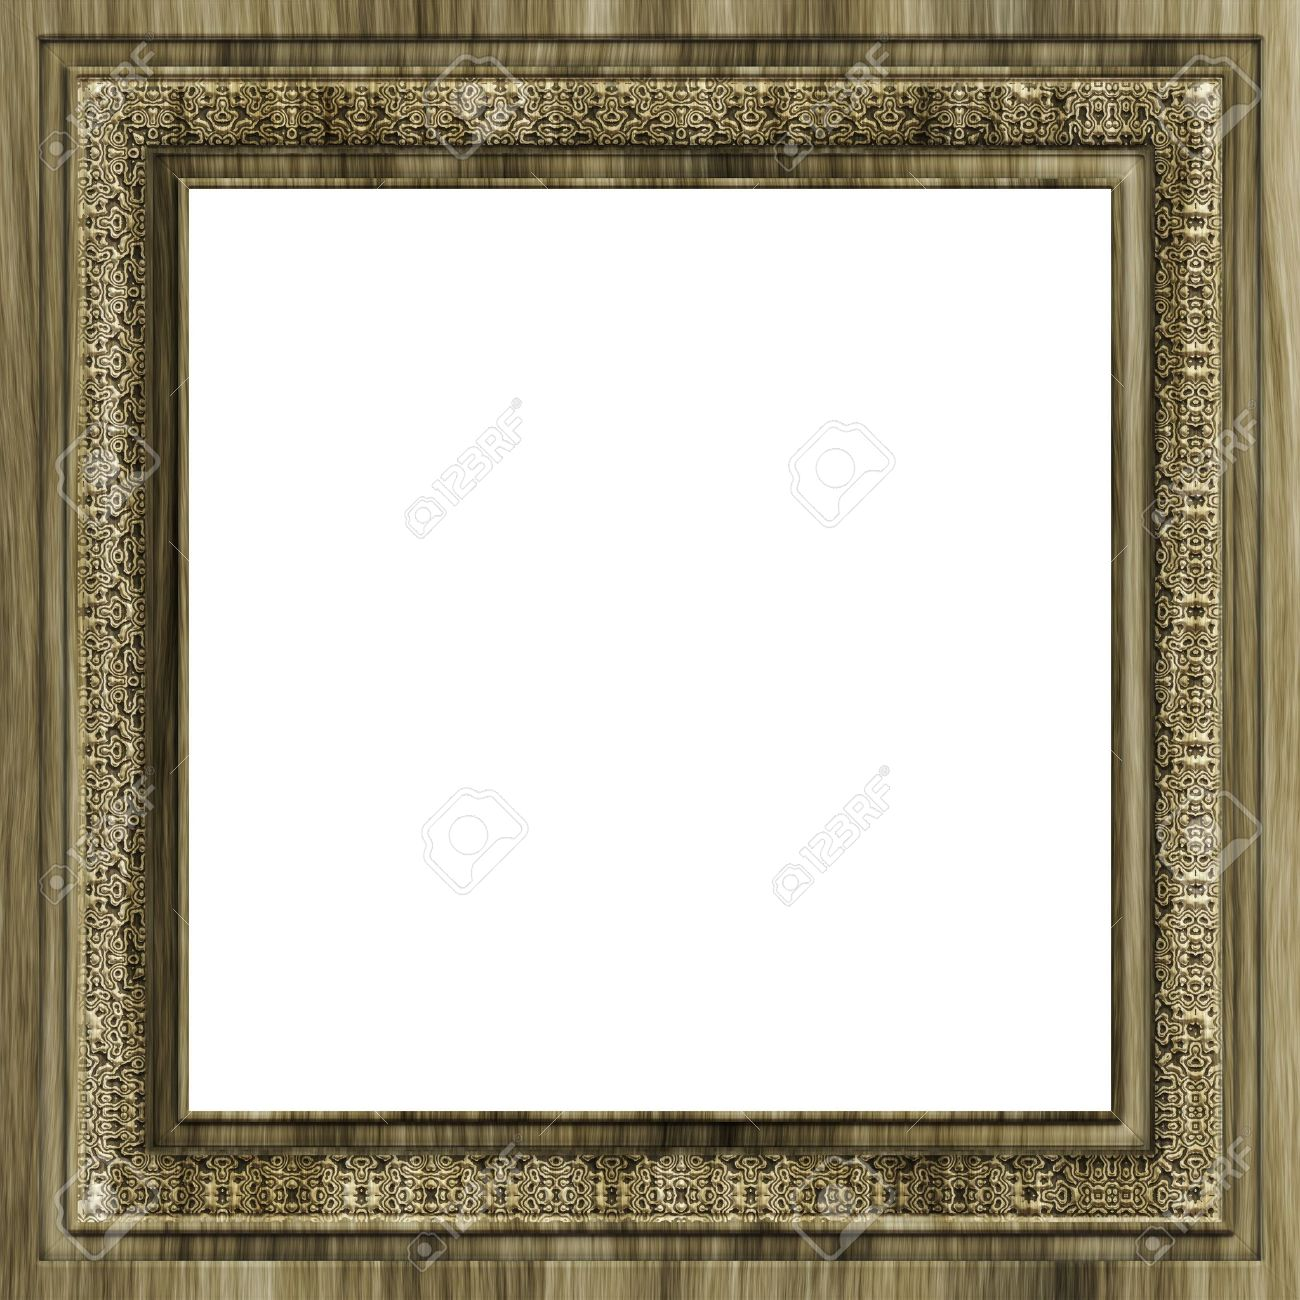 an illustration of a square wooden frame stock illustration 4595771